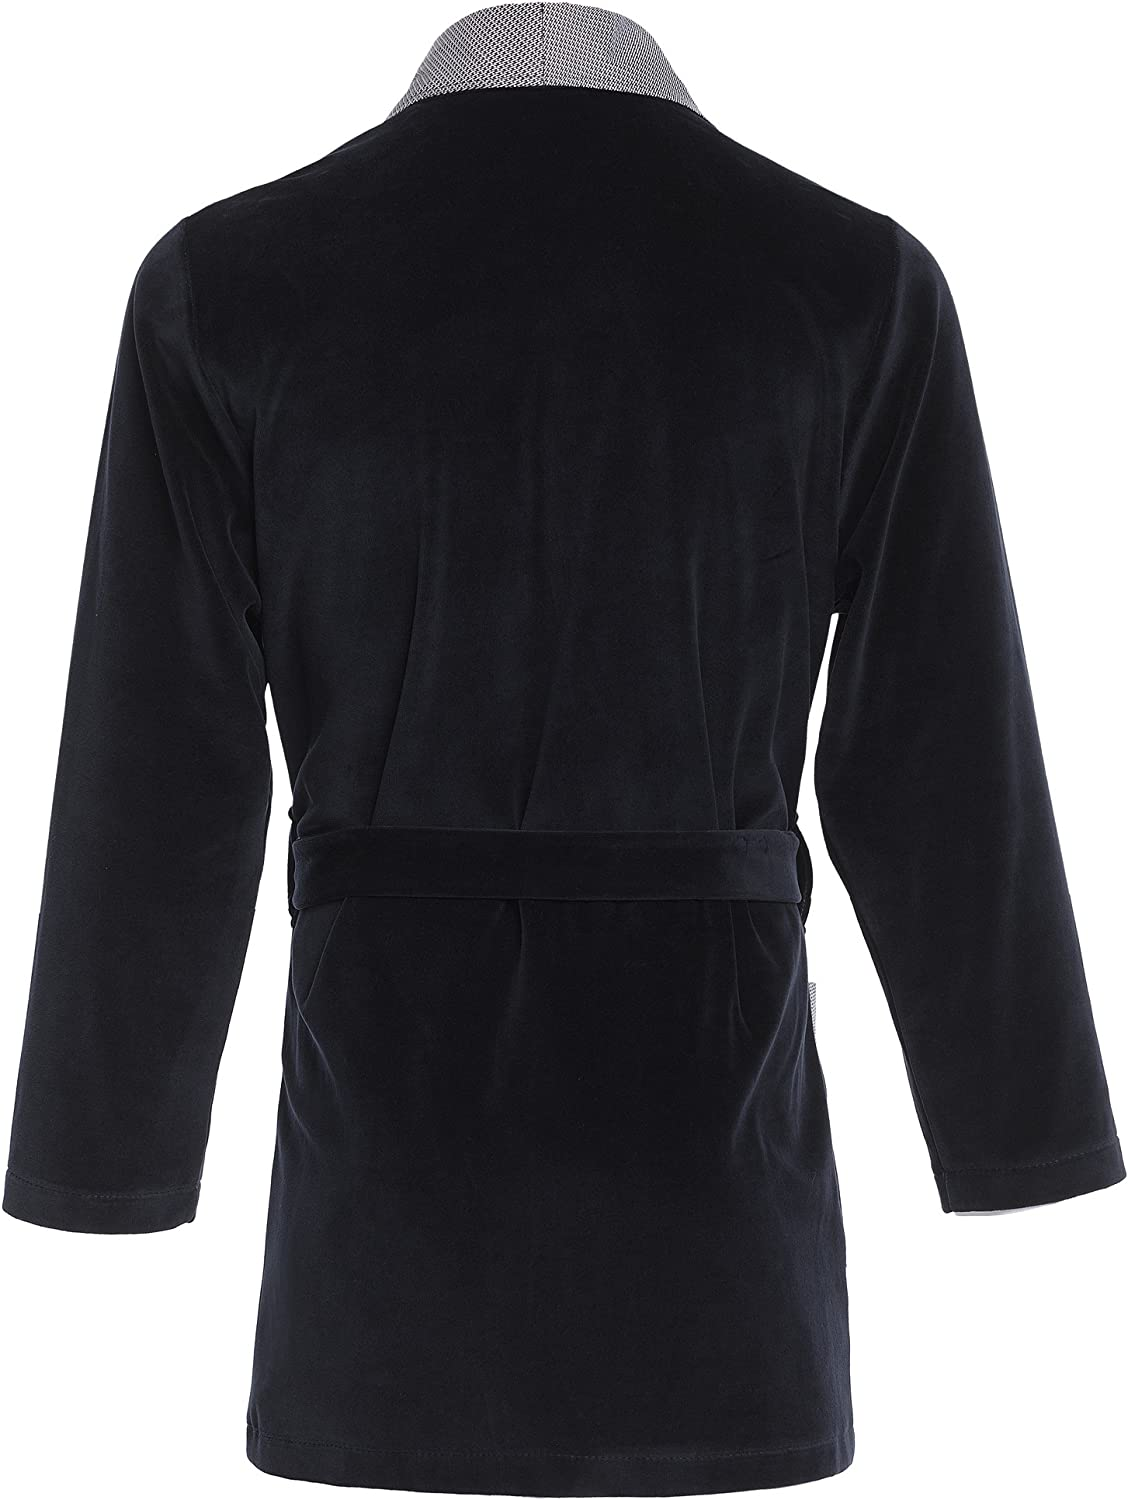 with Embroidered Pocket Revise RE-111 Short Dressing Gown Smoking Jacket